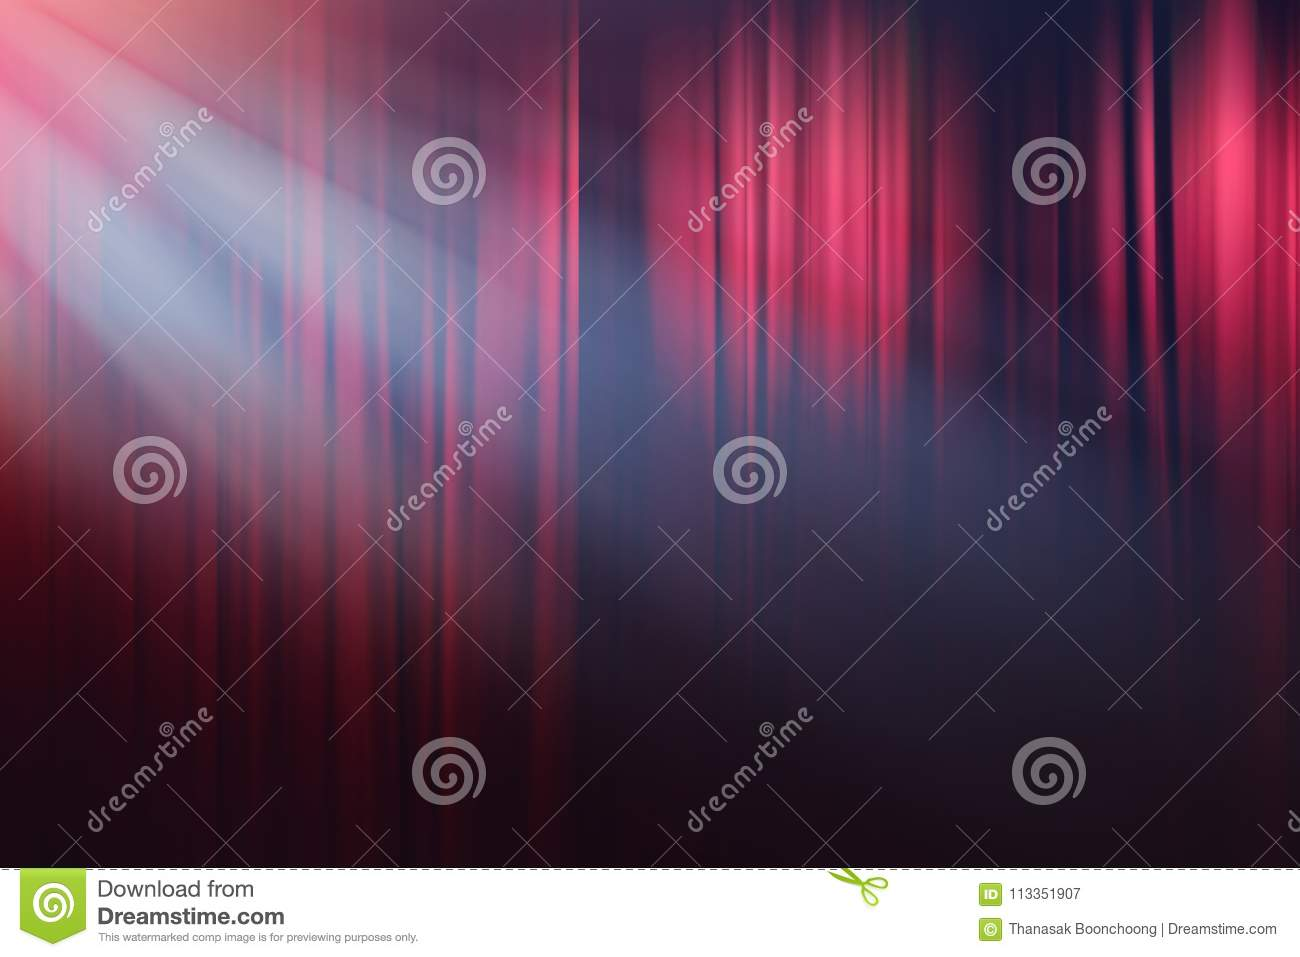 Lights on stage, drama theatre show background